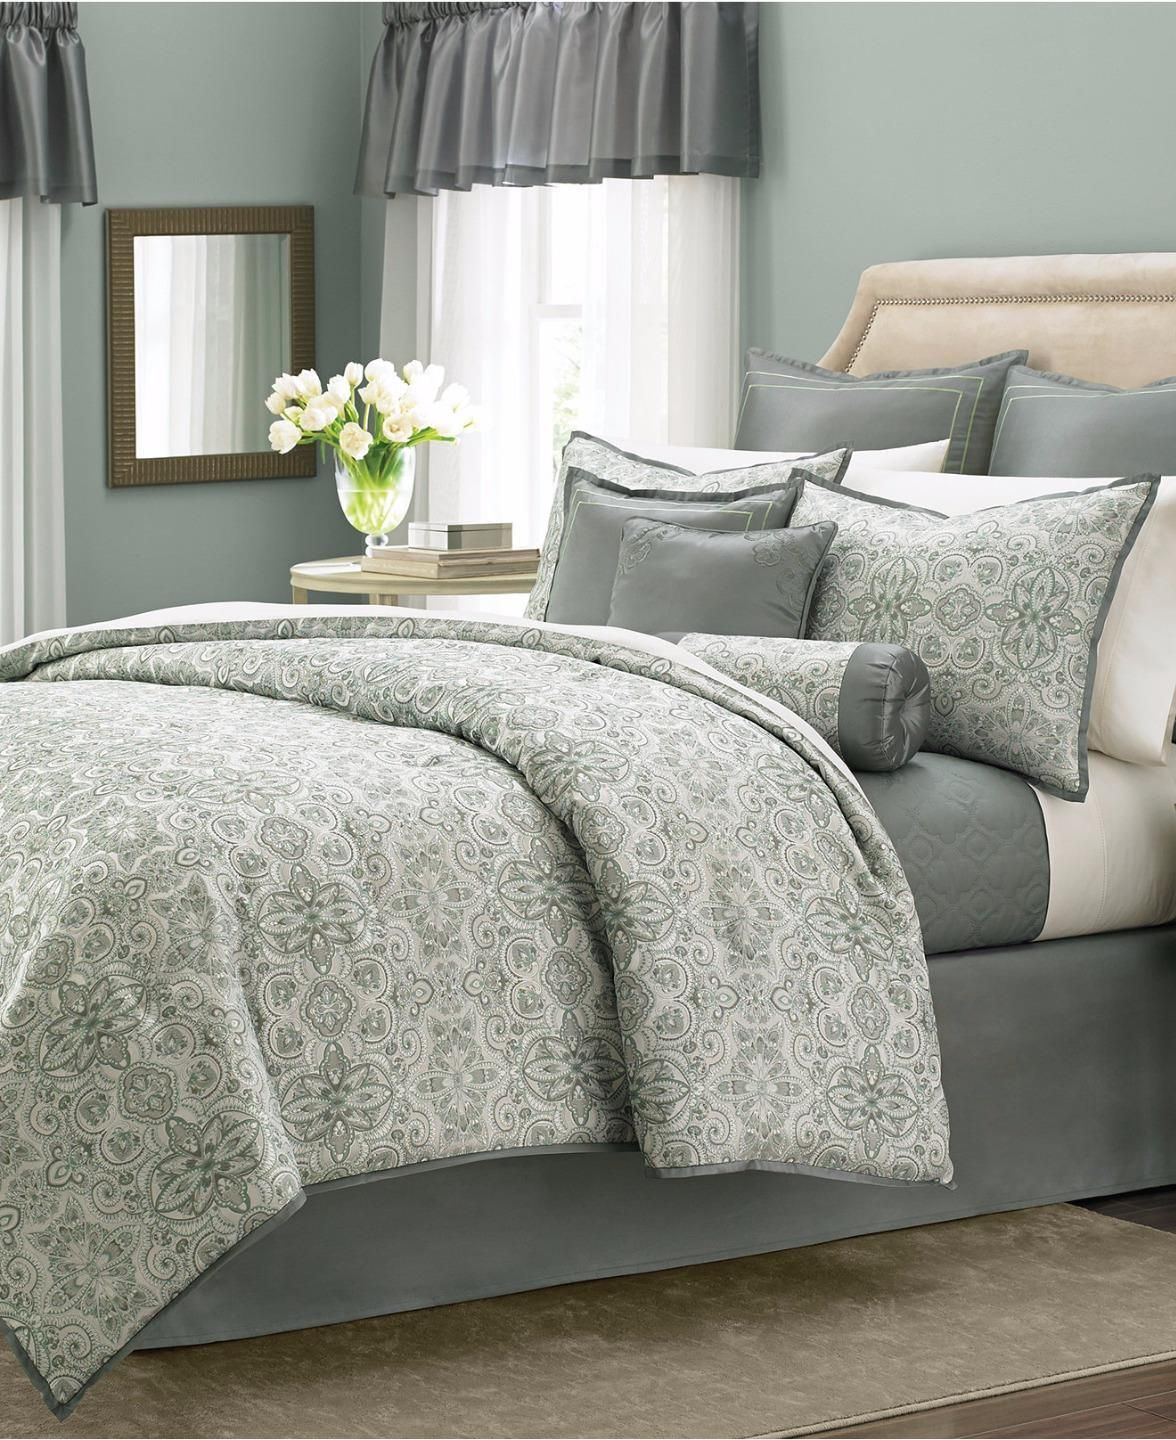 Martha Stewart Collection Regal Filigree 21 Pieces Queen Comforter Set v15  | eBay